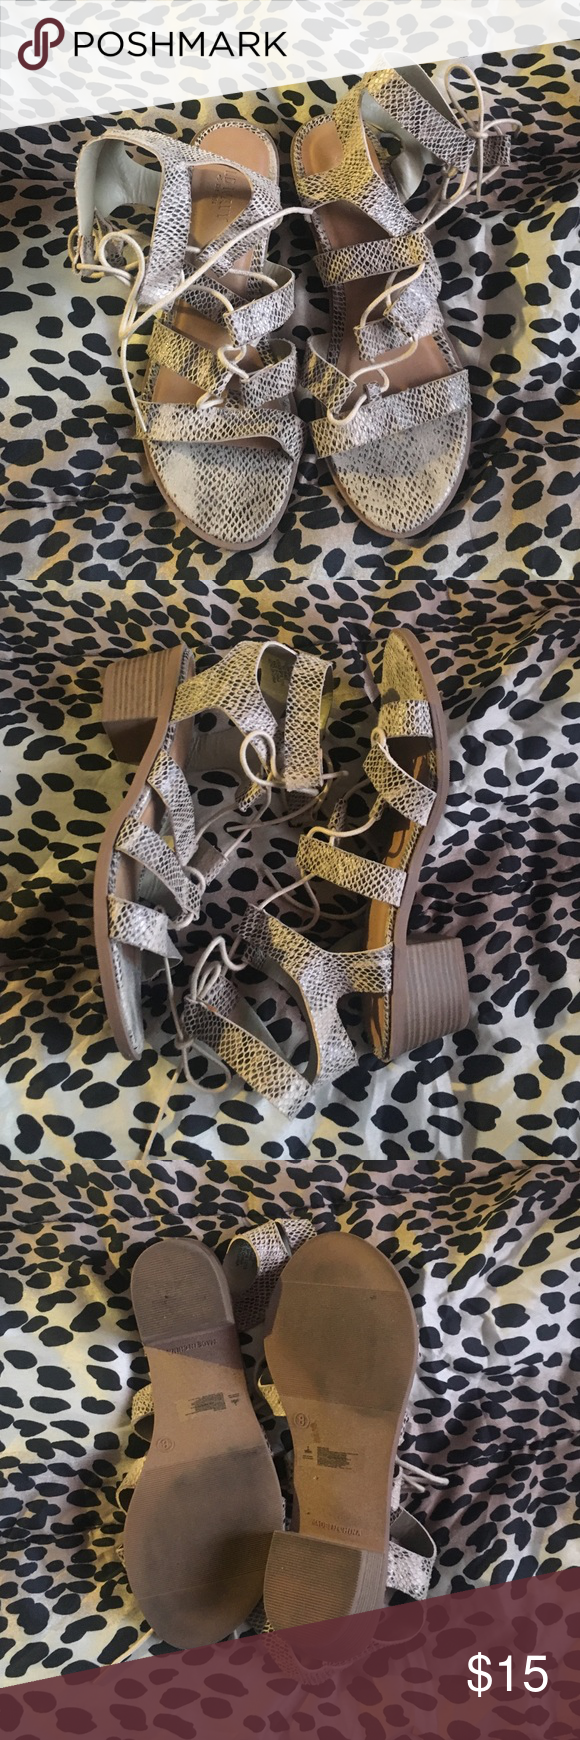 Sandals. Heeled gladiator sandals with adjustable laces. Worn a couple times, good condition. Inside of straps in the left foot has two stains, and the snake print is a little worn on some parts of the shoes (pics above). Pls feel free to ask for more pics. Old Navy Shoes Sandals